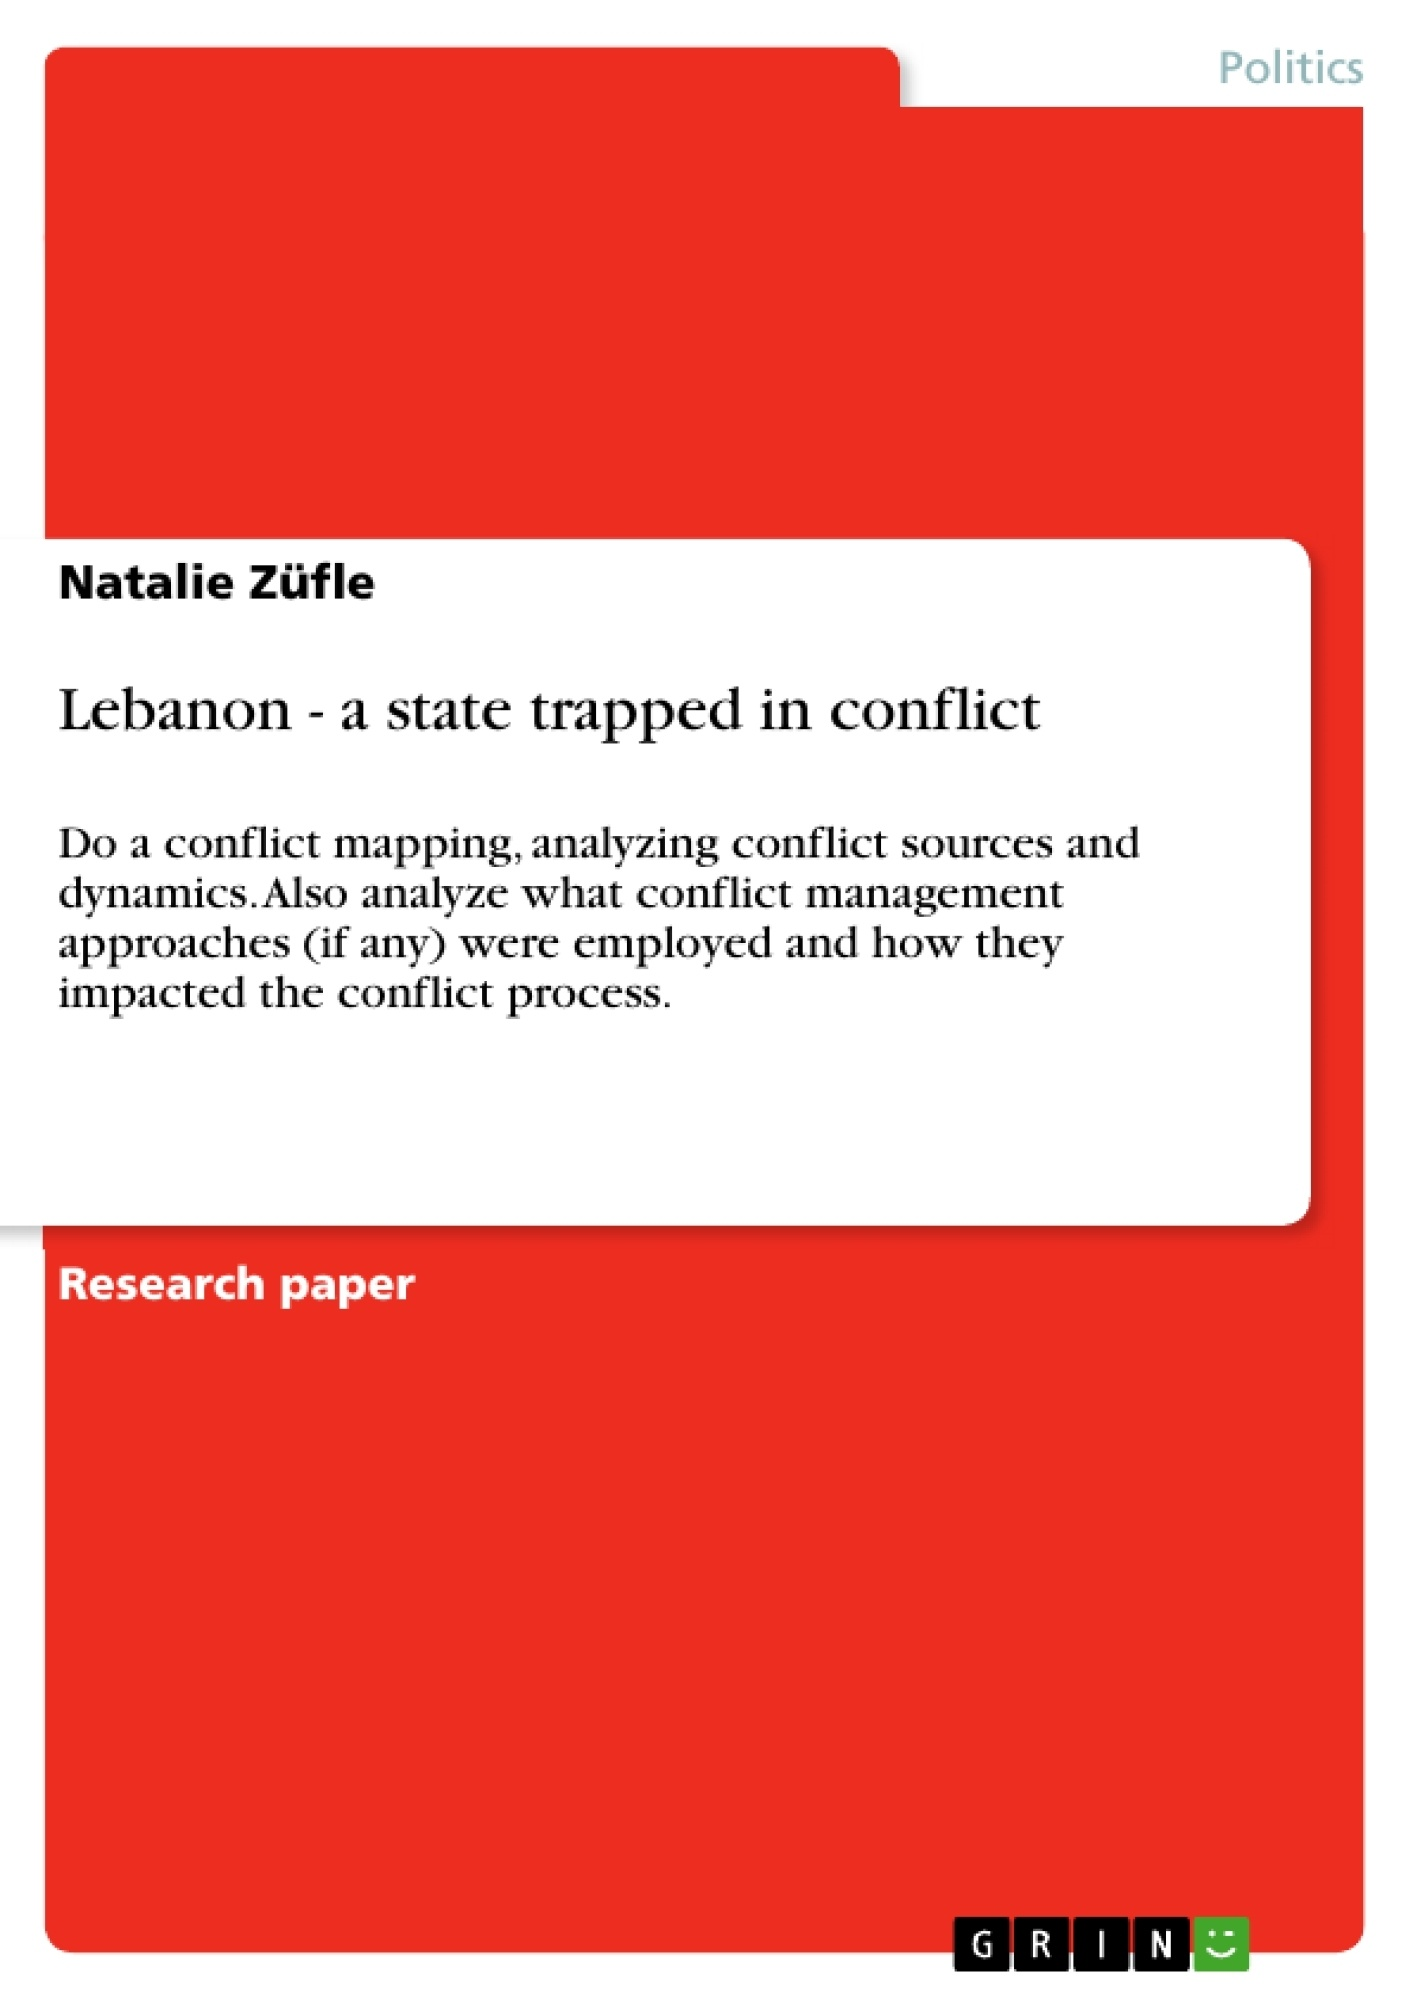 Title: Lebanon - a state trapped in conflict